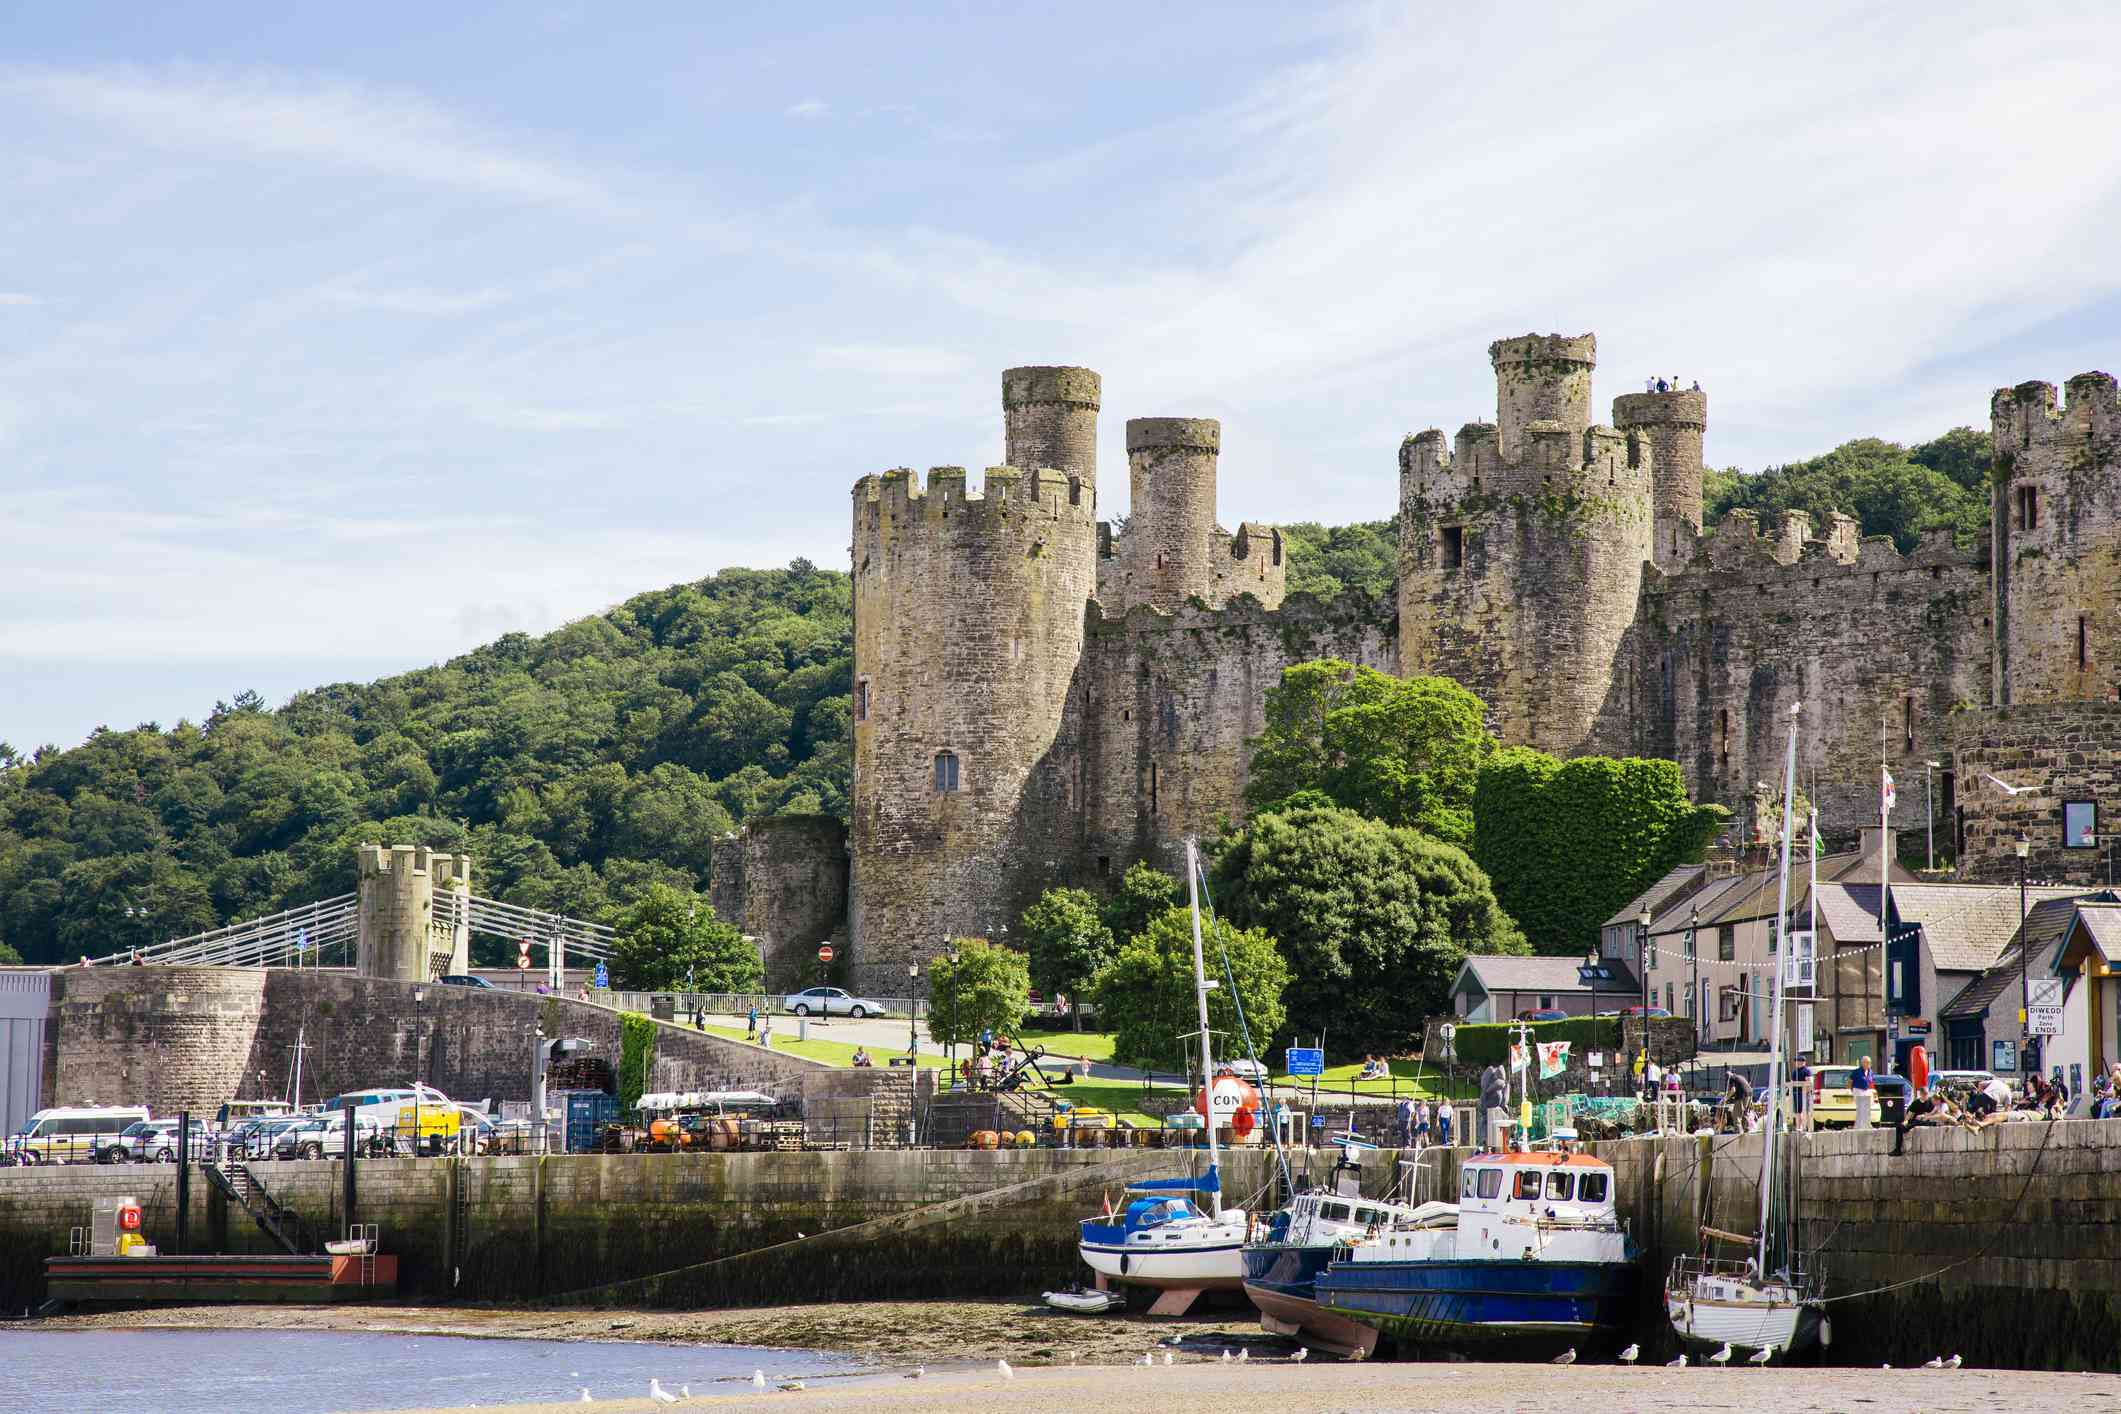 Harbor and old castle in Conwy, North Wales, Wales, UK